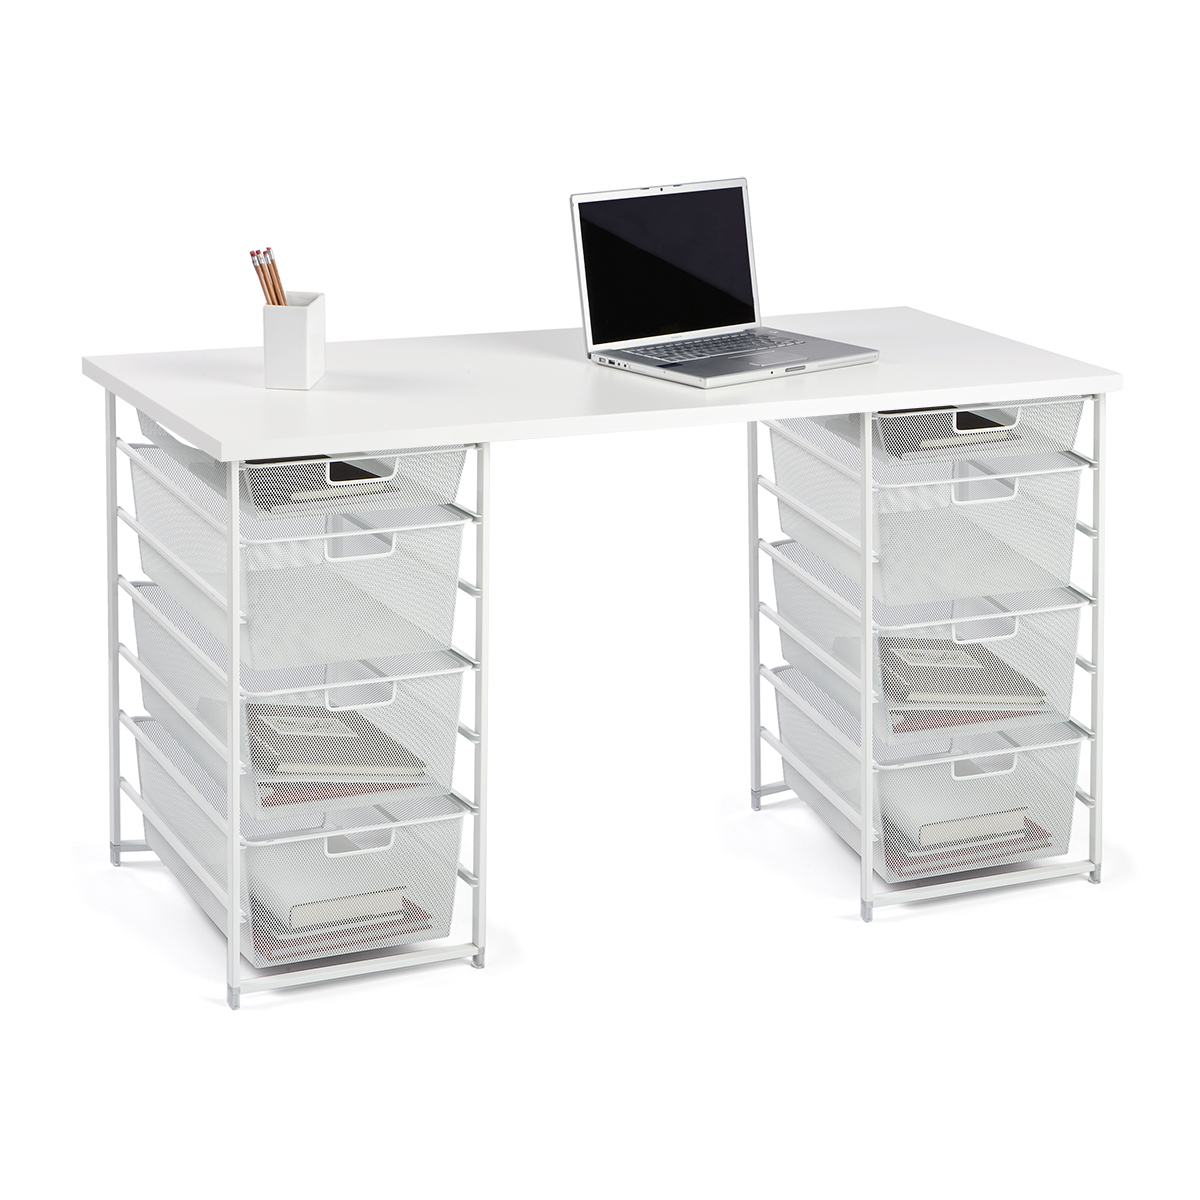 Custom Desk - Design Your Own Customized Desk | The Container Store